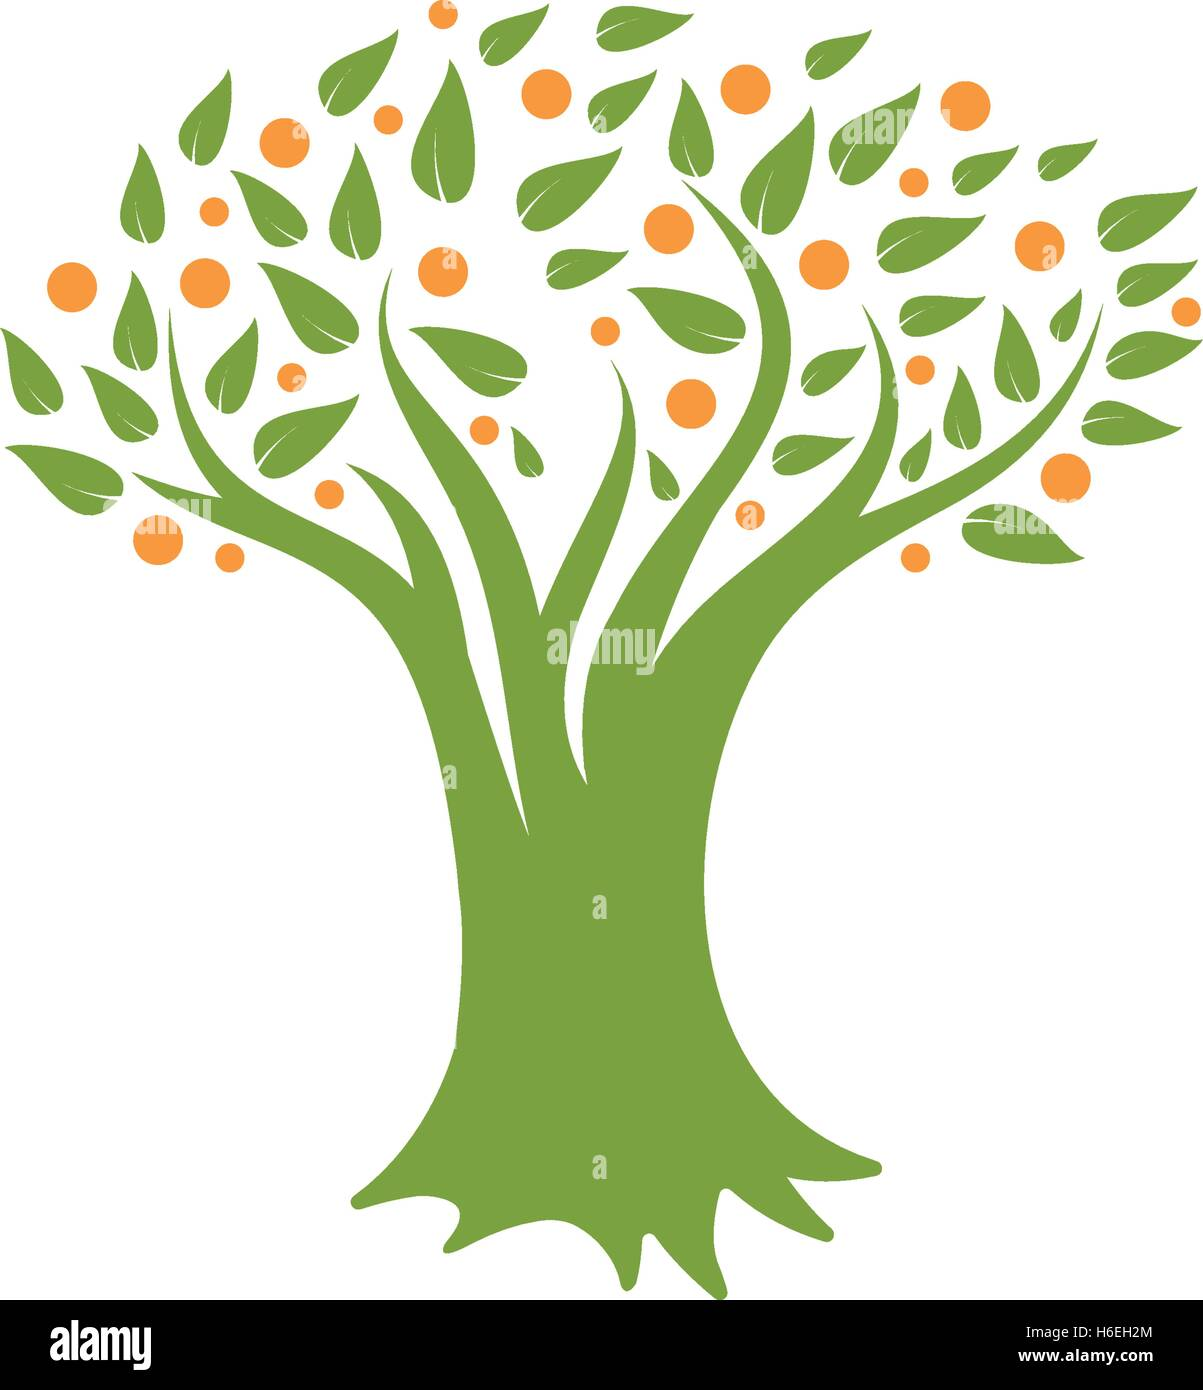 Branch Leaves Stylized Icon Vector Stock Photos & Branch Leaves ...